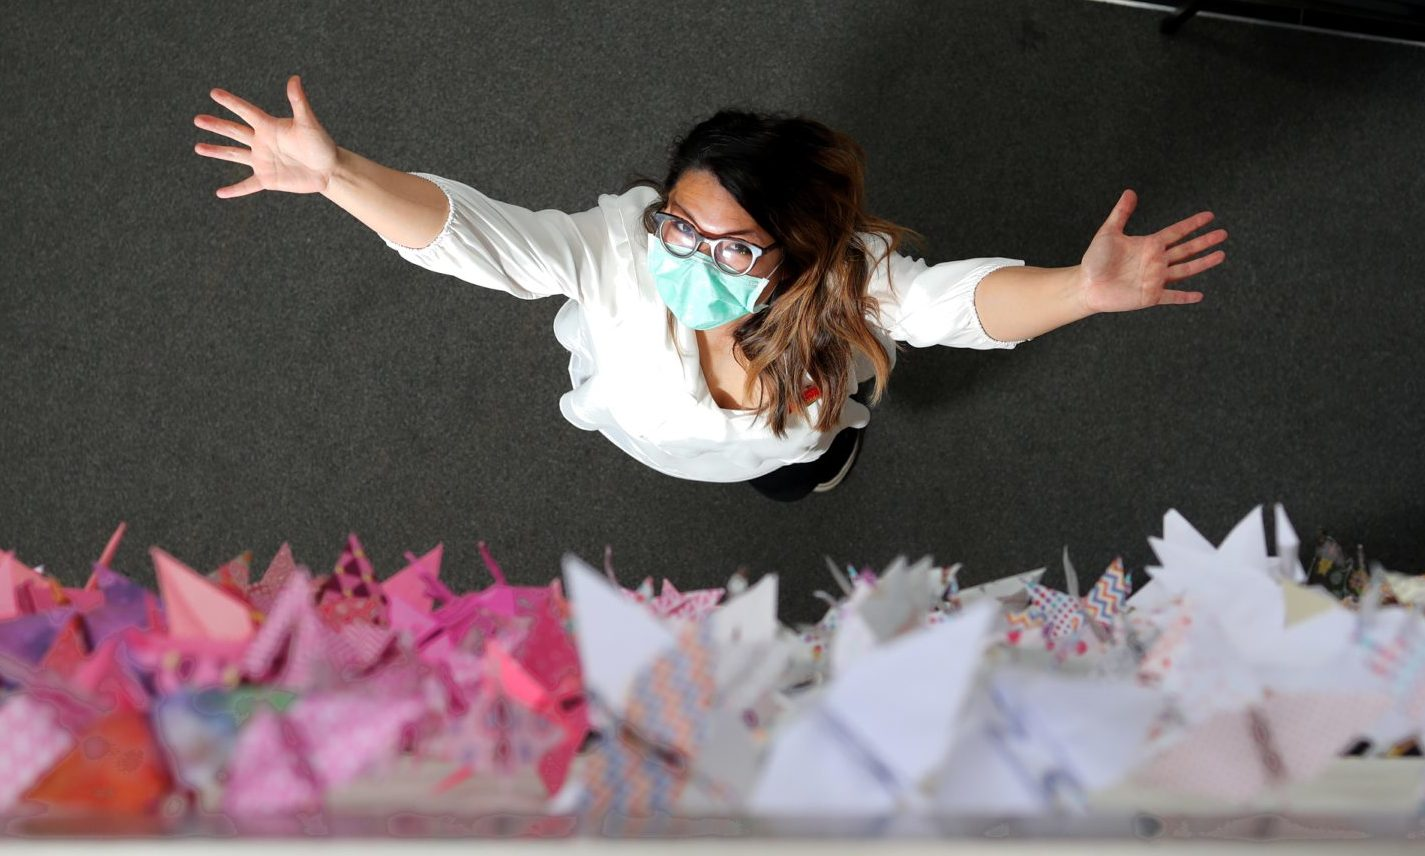 Janet Liddel's project yielded more than 1,000 origami cranes.